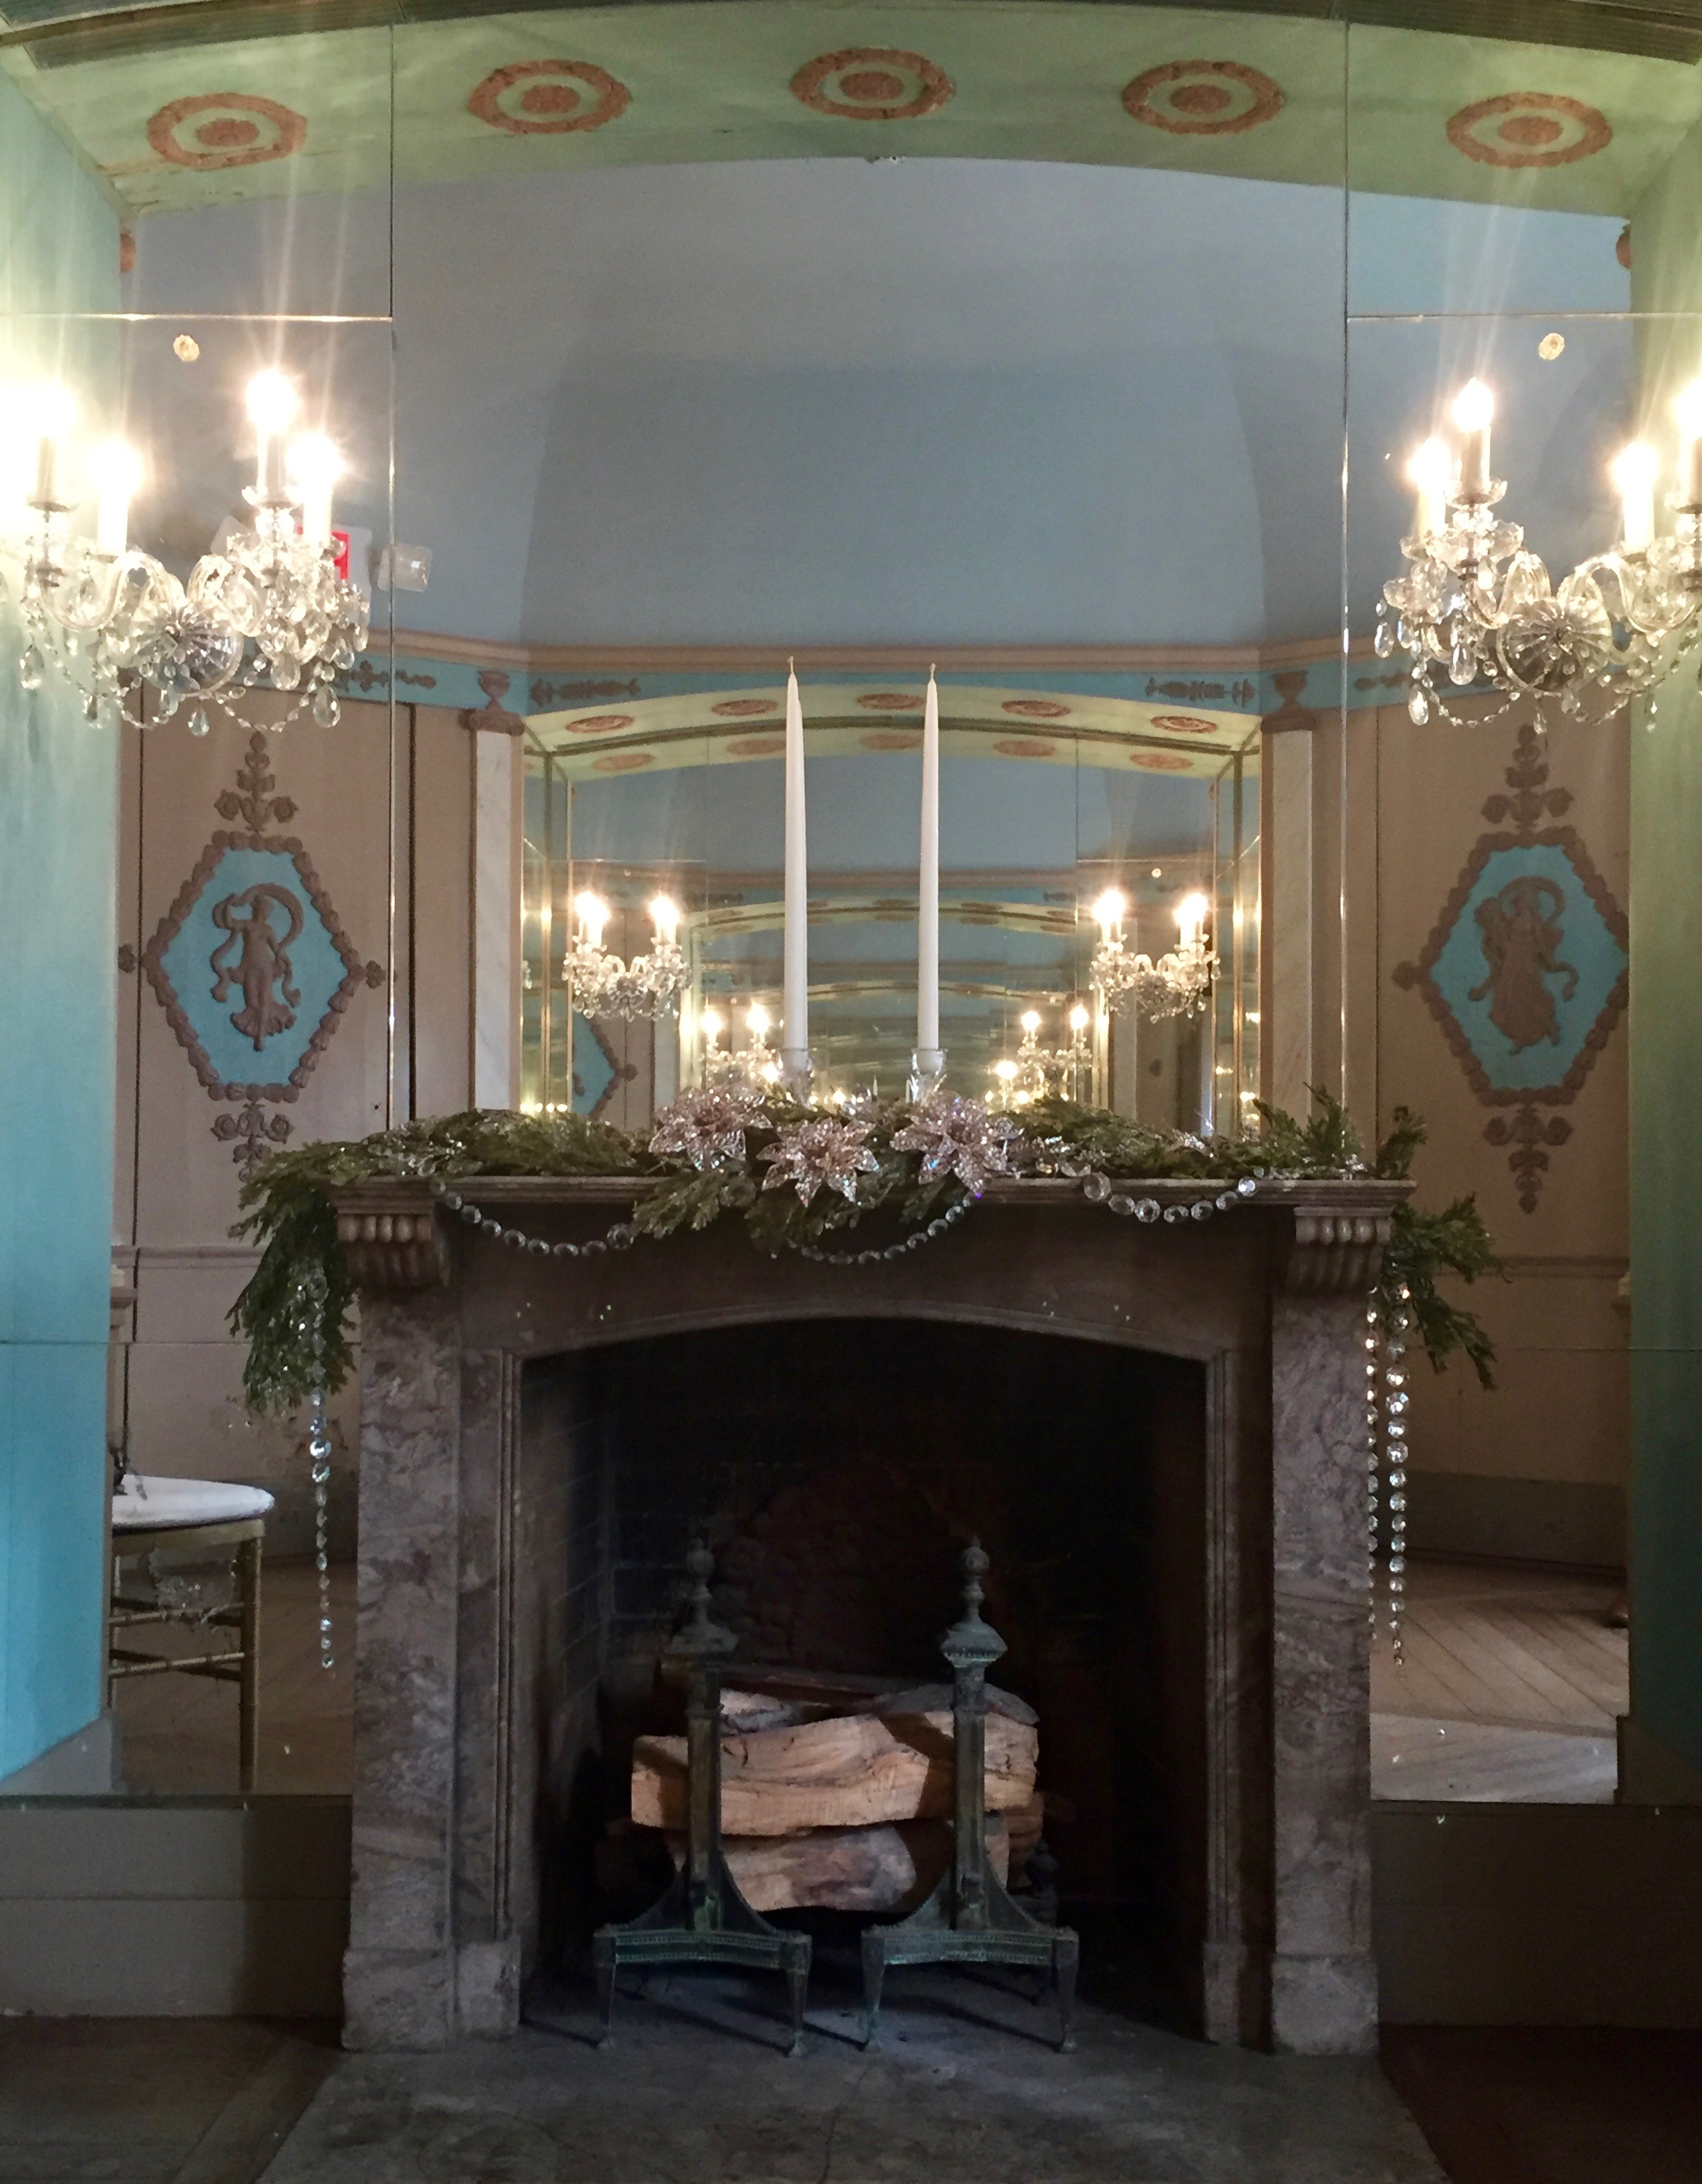 The fireplace in the Mrs. Vanderbilt's dressing room was topped with a simple green garland and draped in crystals to compliment the chandeliers in the room and on the necklace on the Christmas Dress.